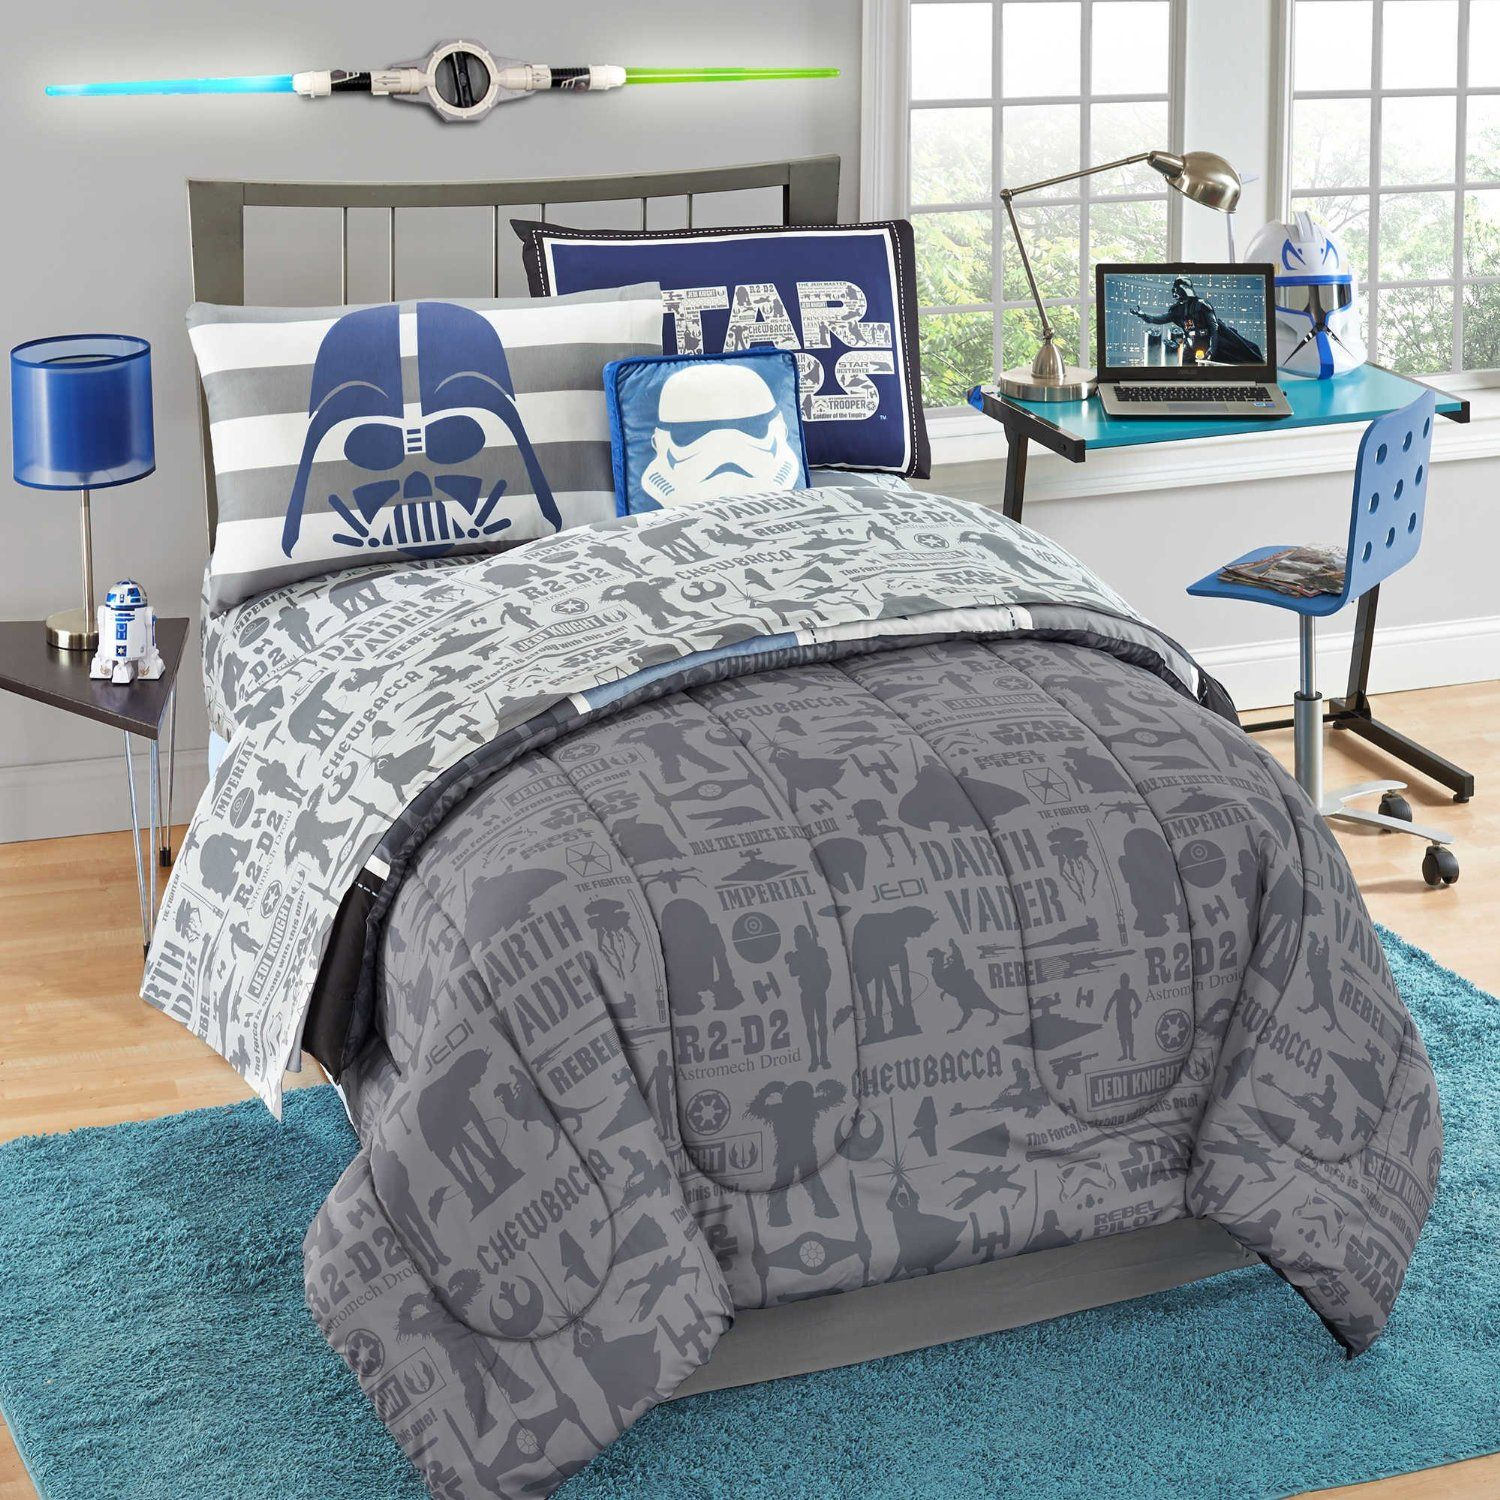 queen comforter boxlunch res hero fighter largeimages geometric product loading hi tie star zoom wars twin pdp full